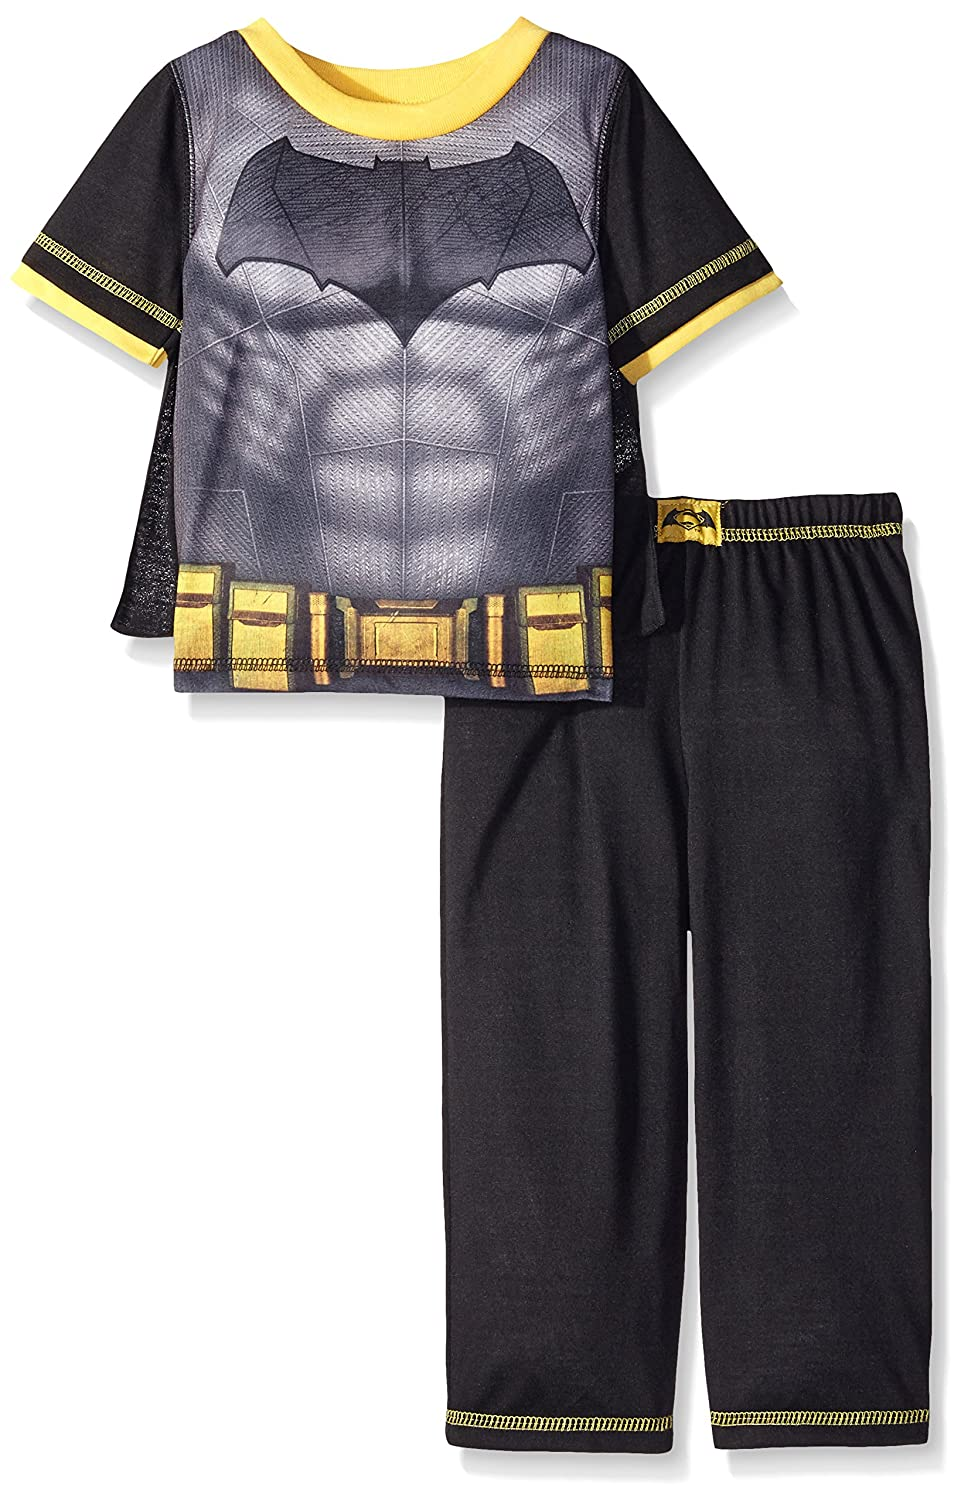 Batman boys Little Boys 2 Piece Set with Cape Black 2T K182423DJ